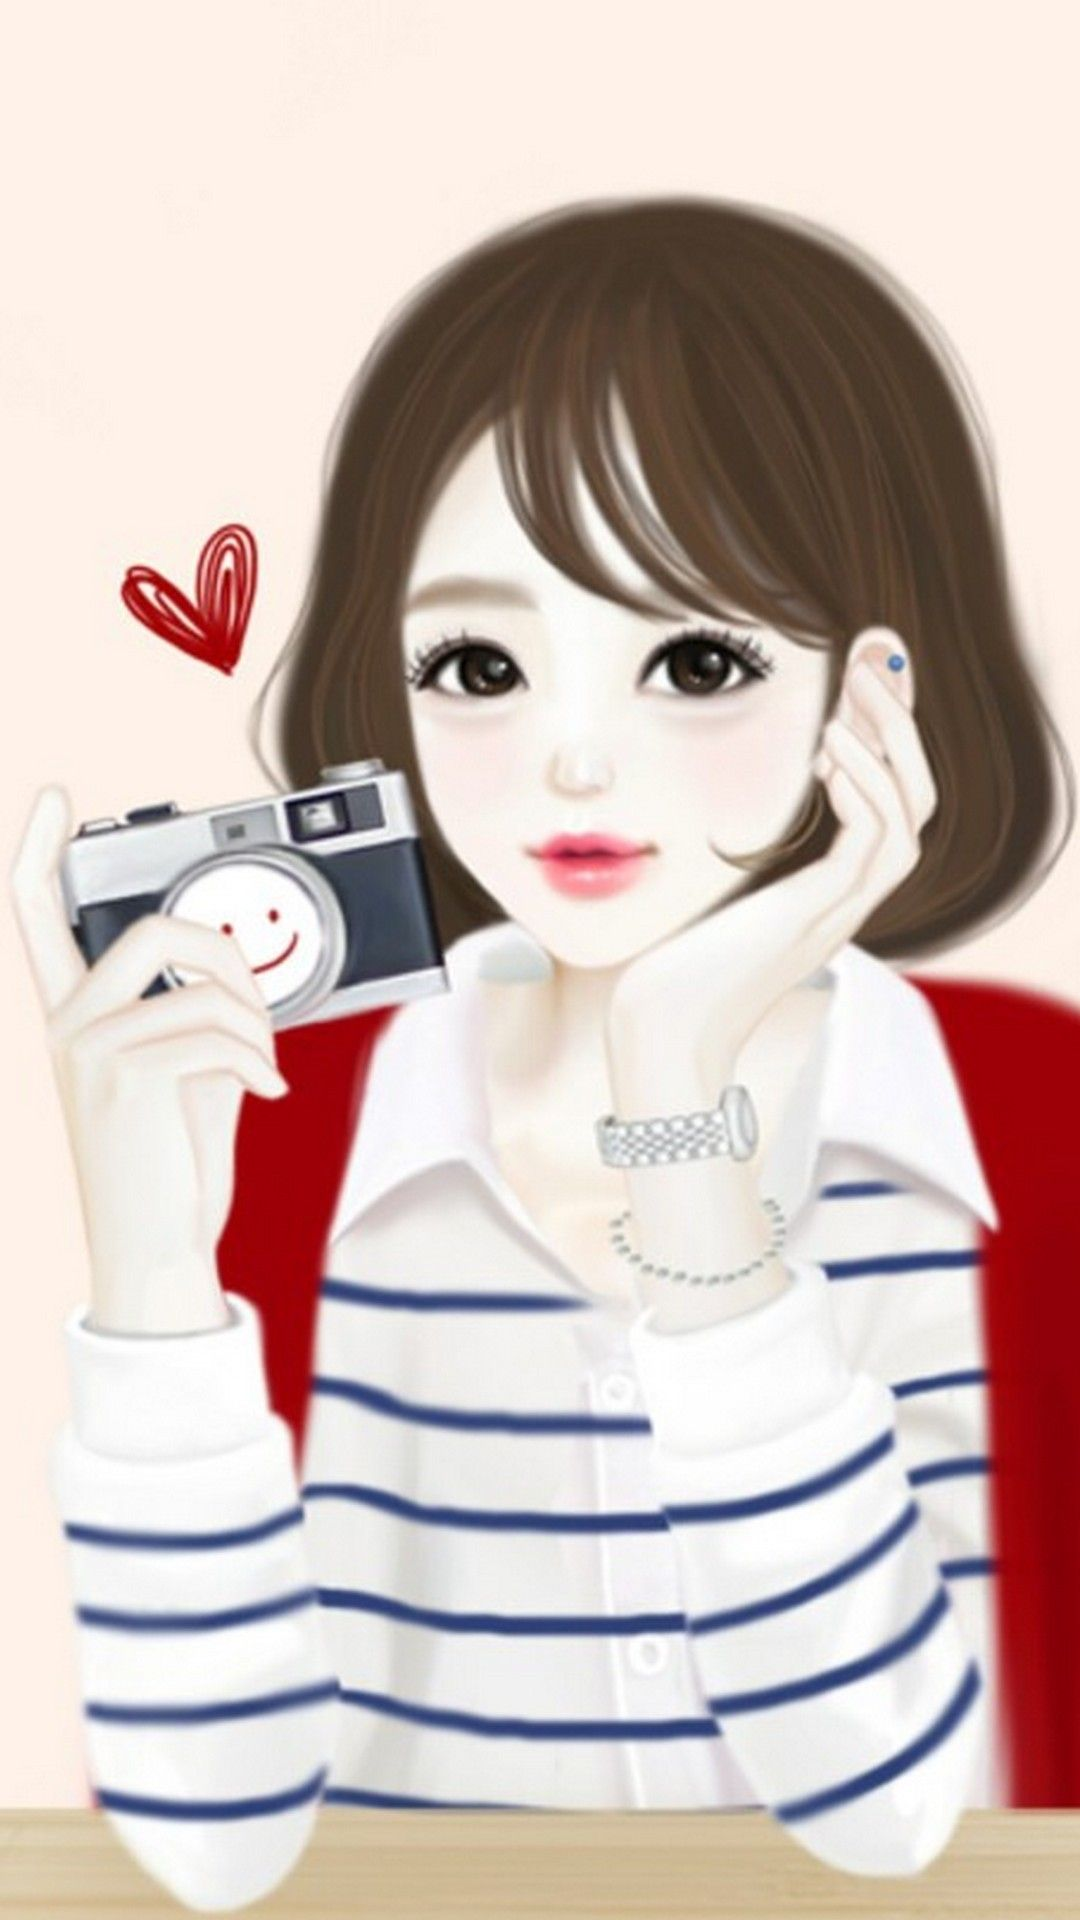 Cute Drawings Wallpaper For Phone Hd With Images Cute Girl